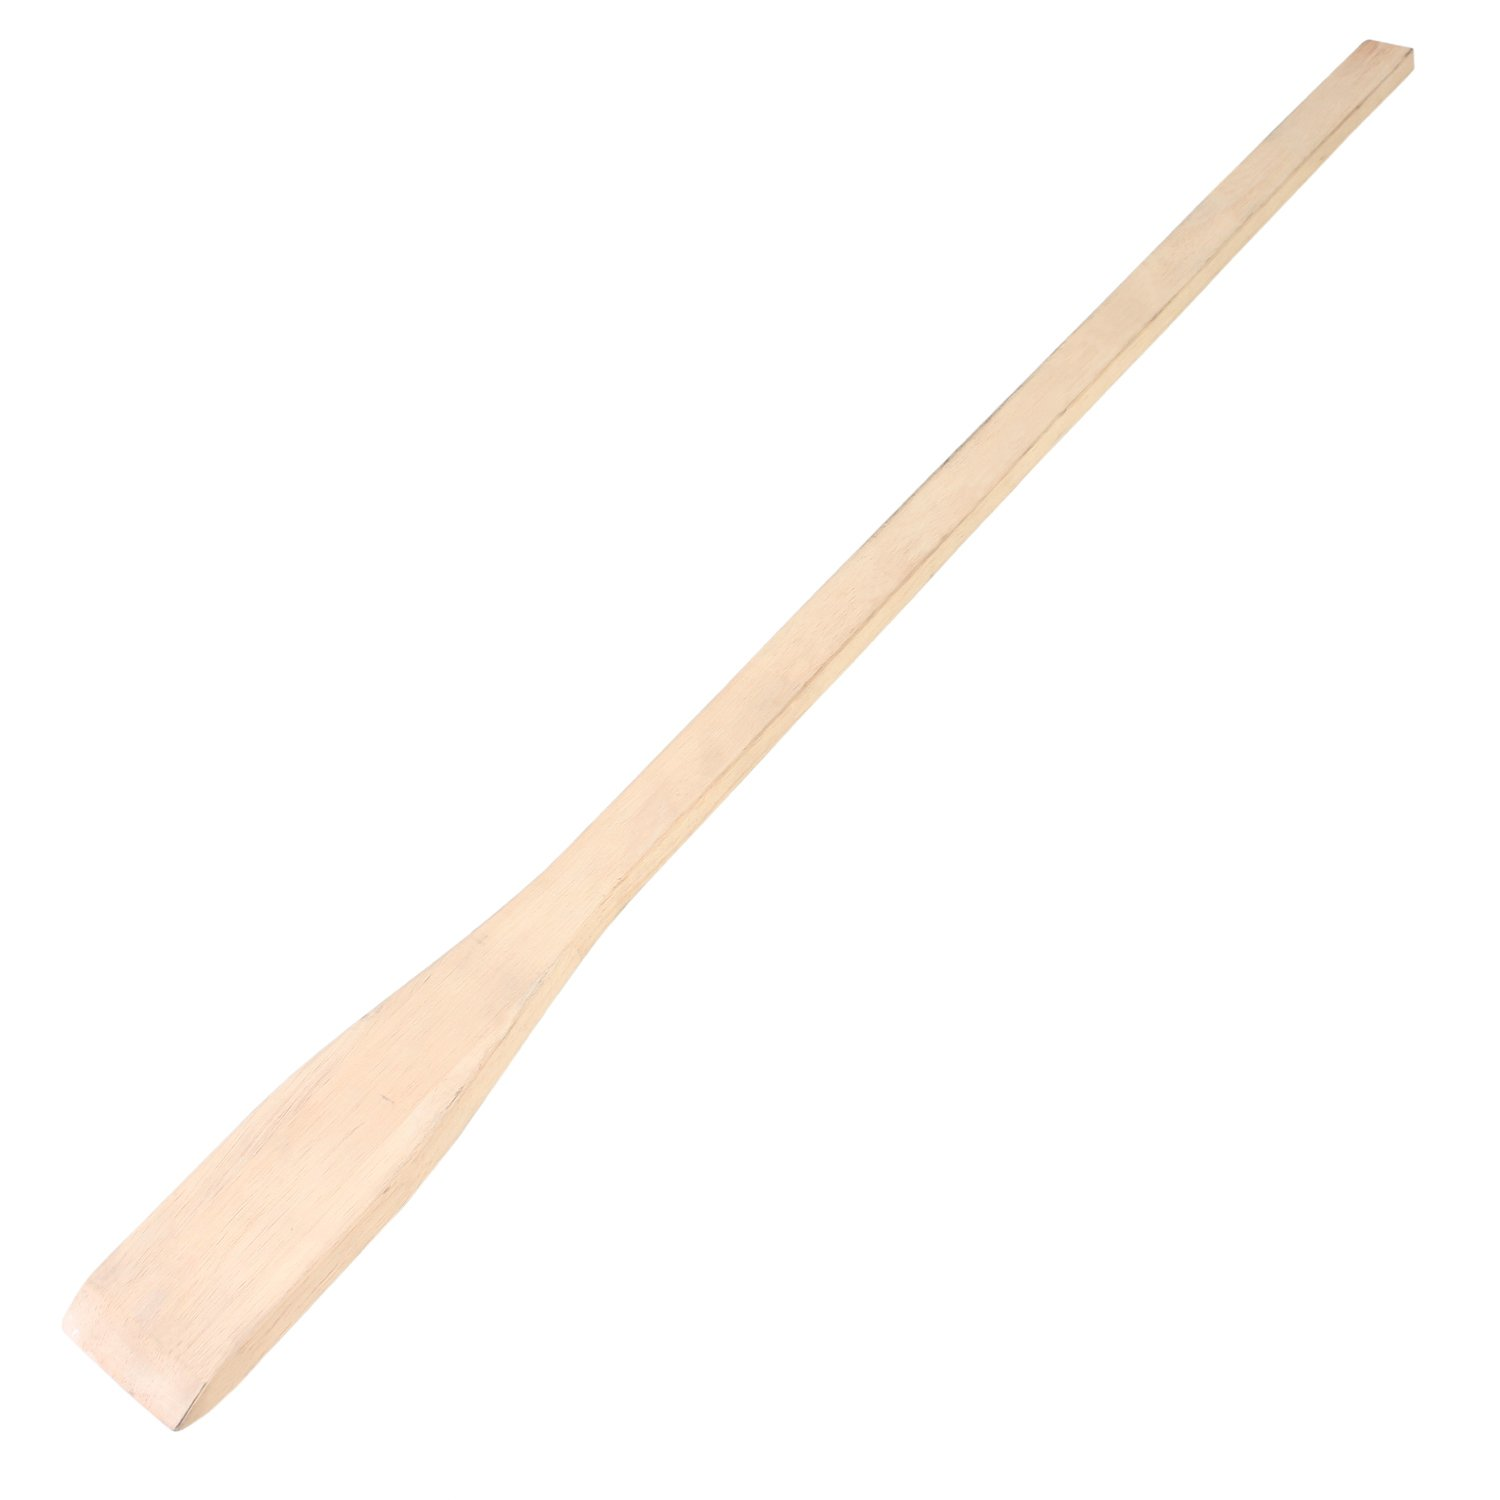 Excellante 20-Inch Wood Mixing Paddles